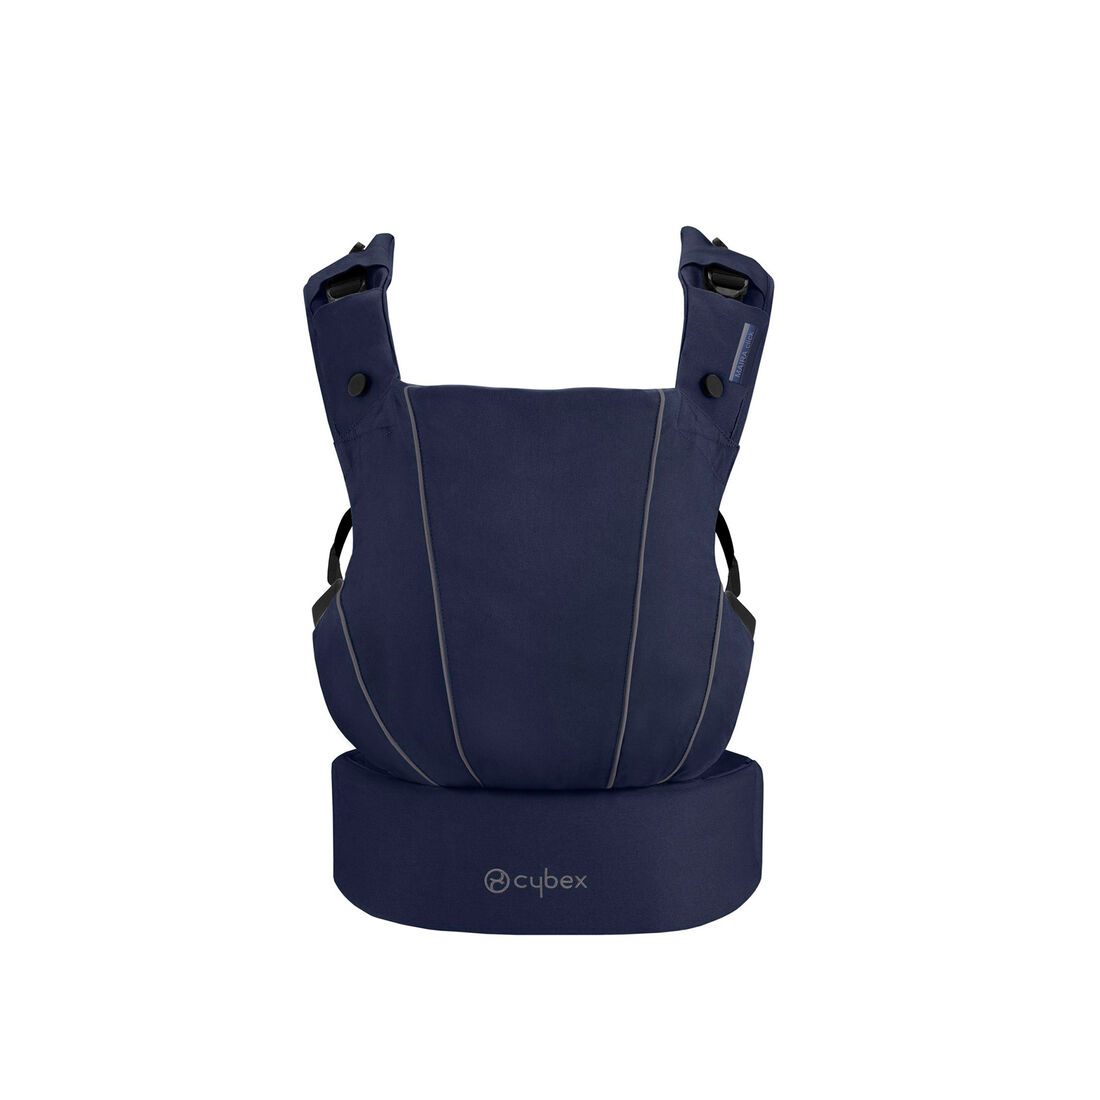 CYBEX Maira Click - Denim Blue in Denim Blue large Bild 1